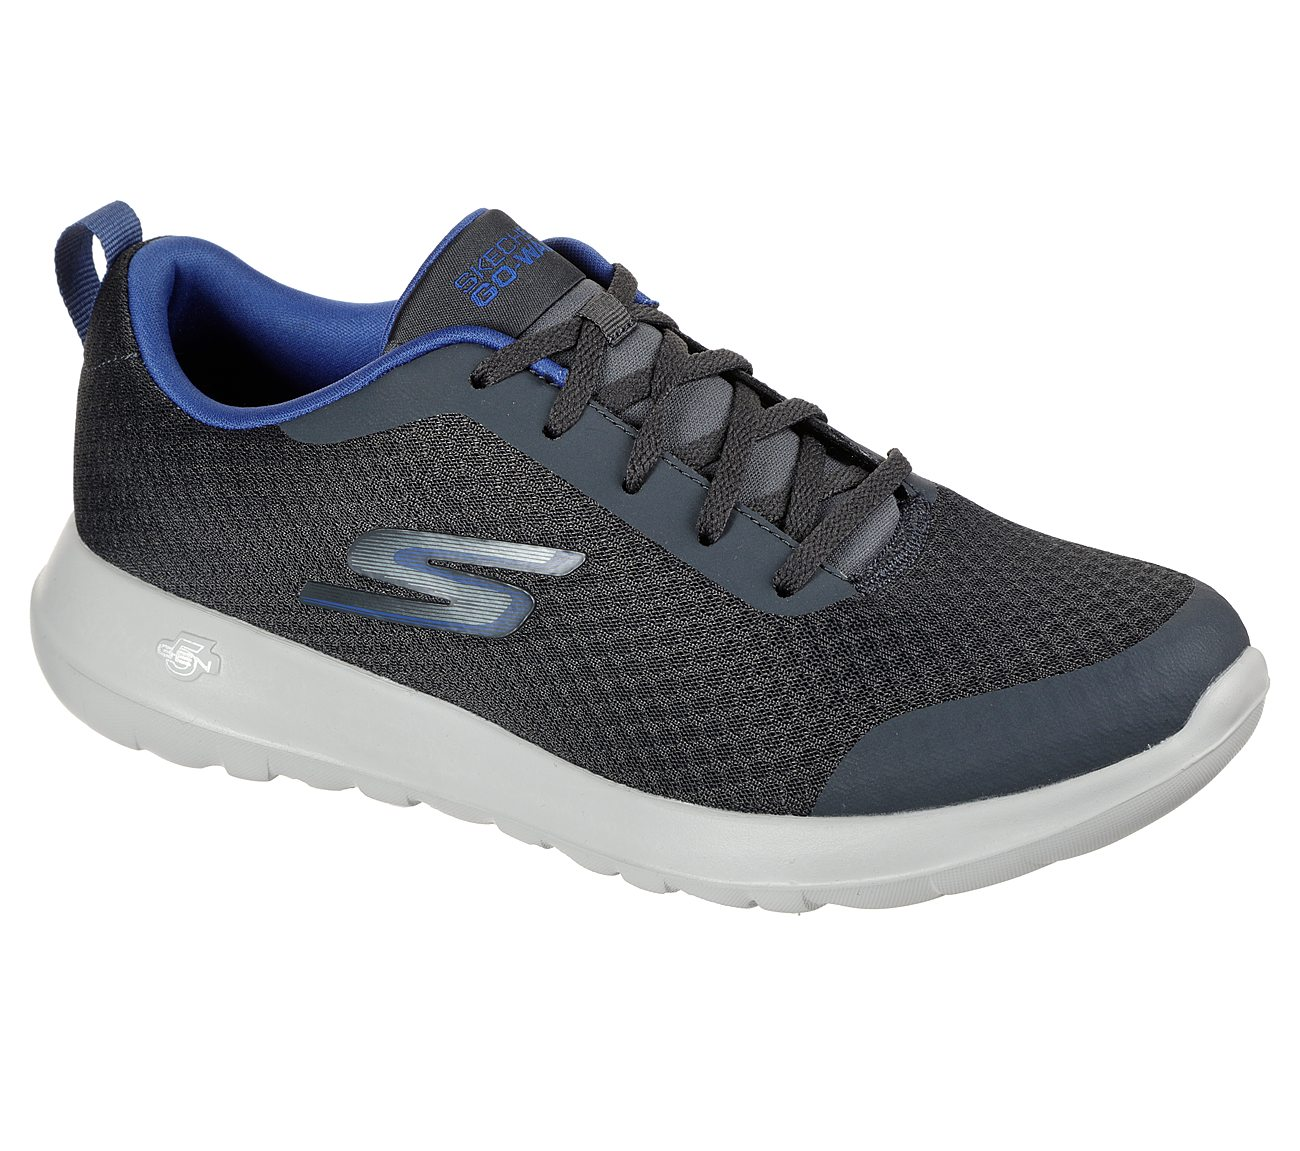 Skechers GOwalk Max Otis